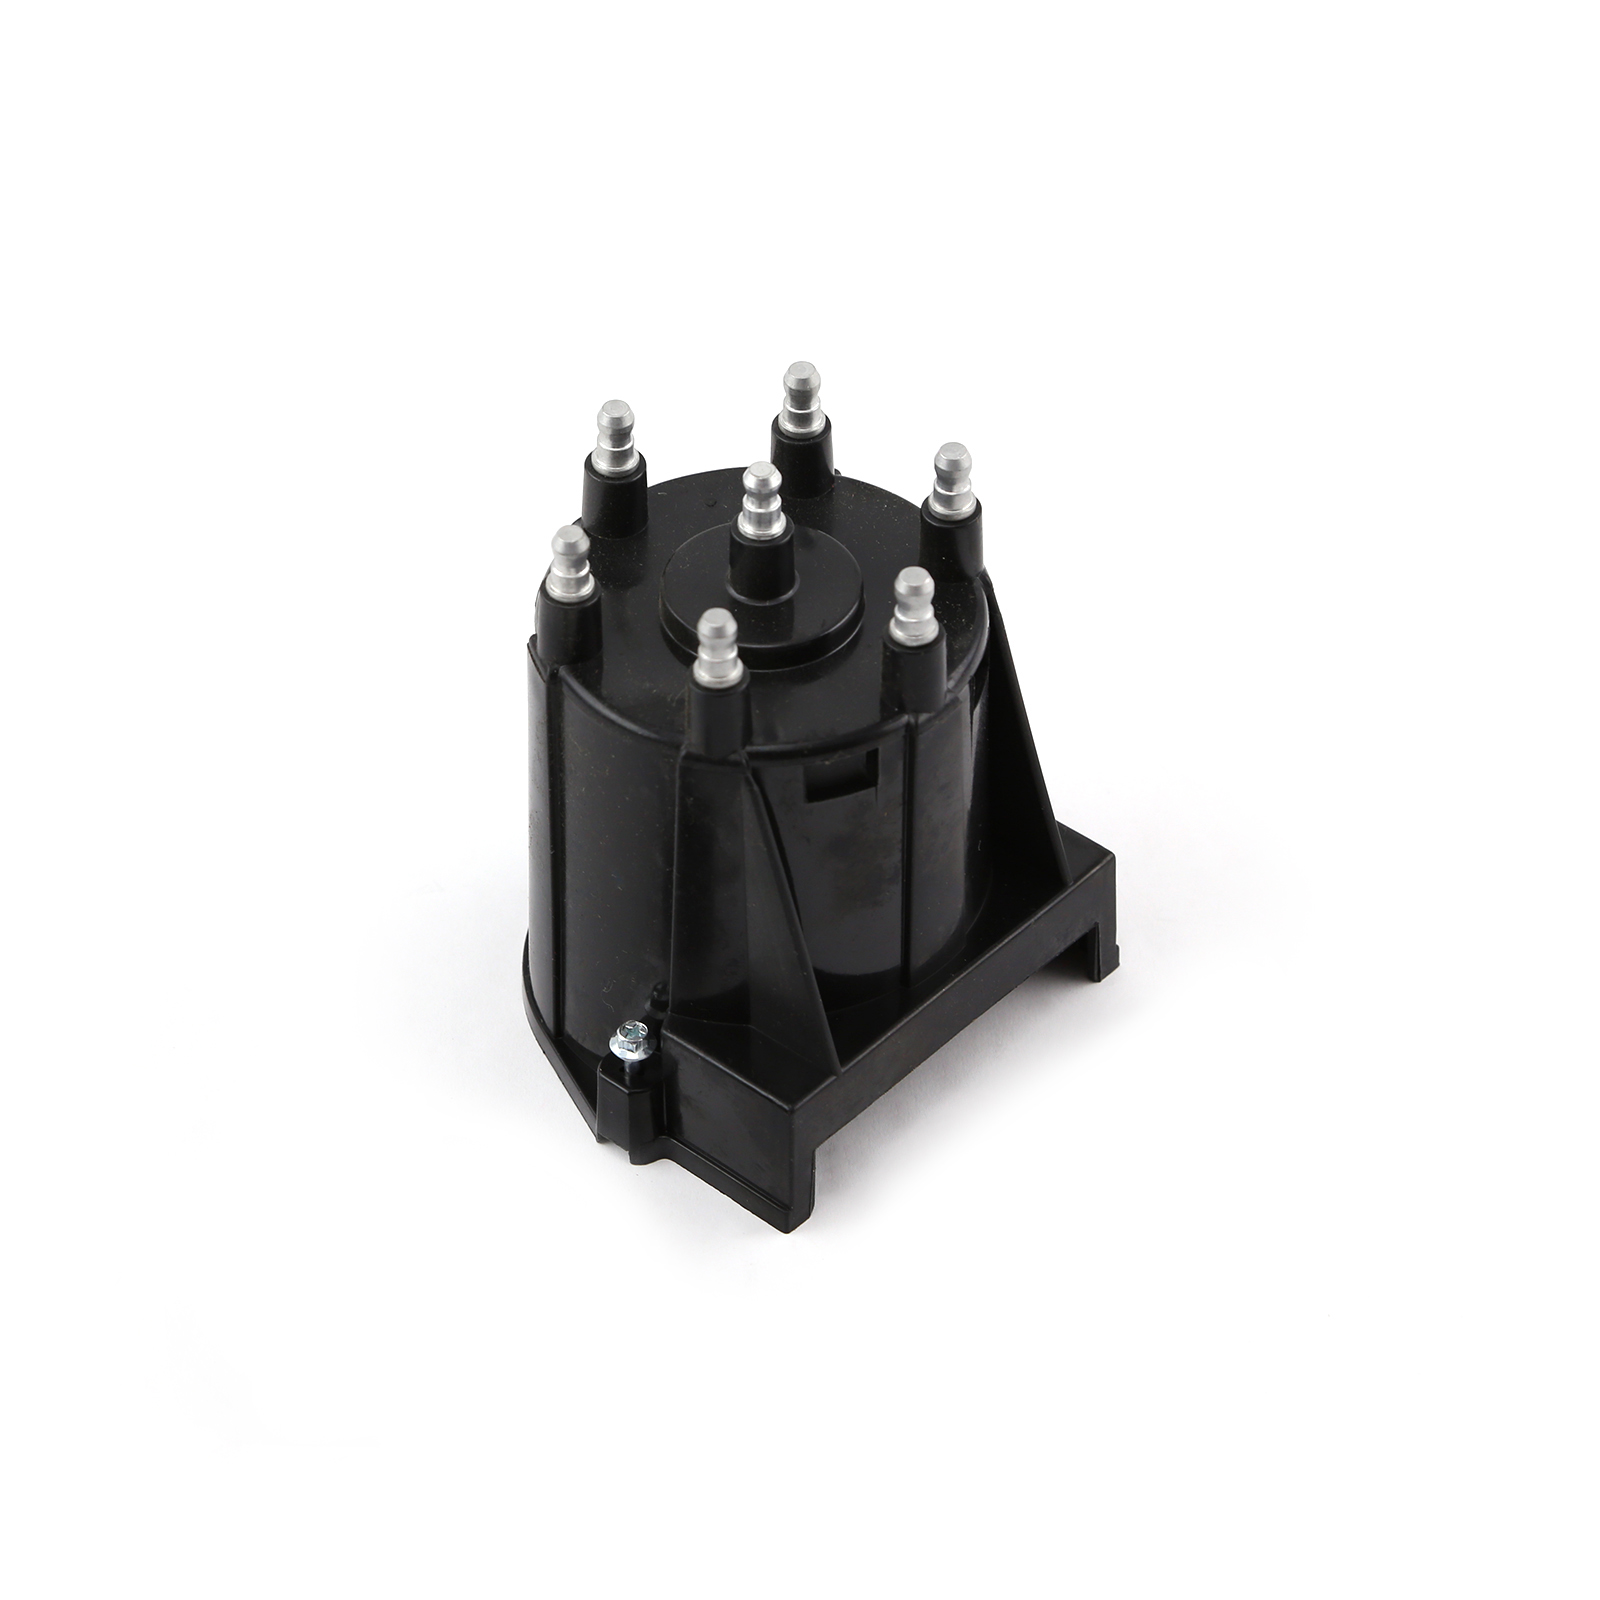 Pc10001-8 Series Distributor Cap - Black